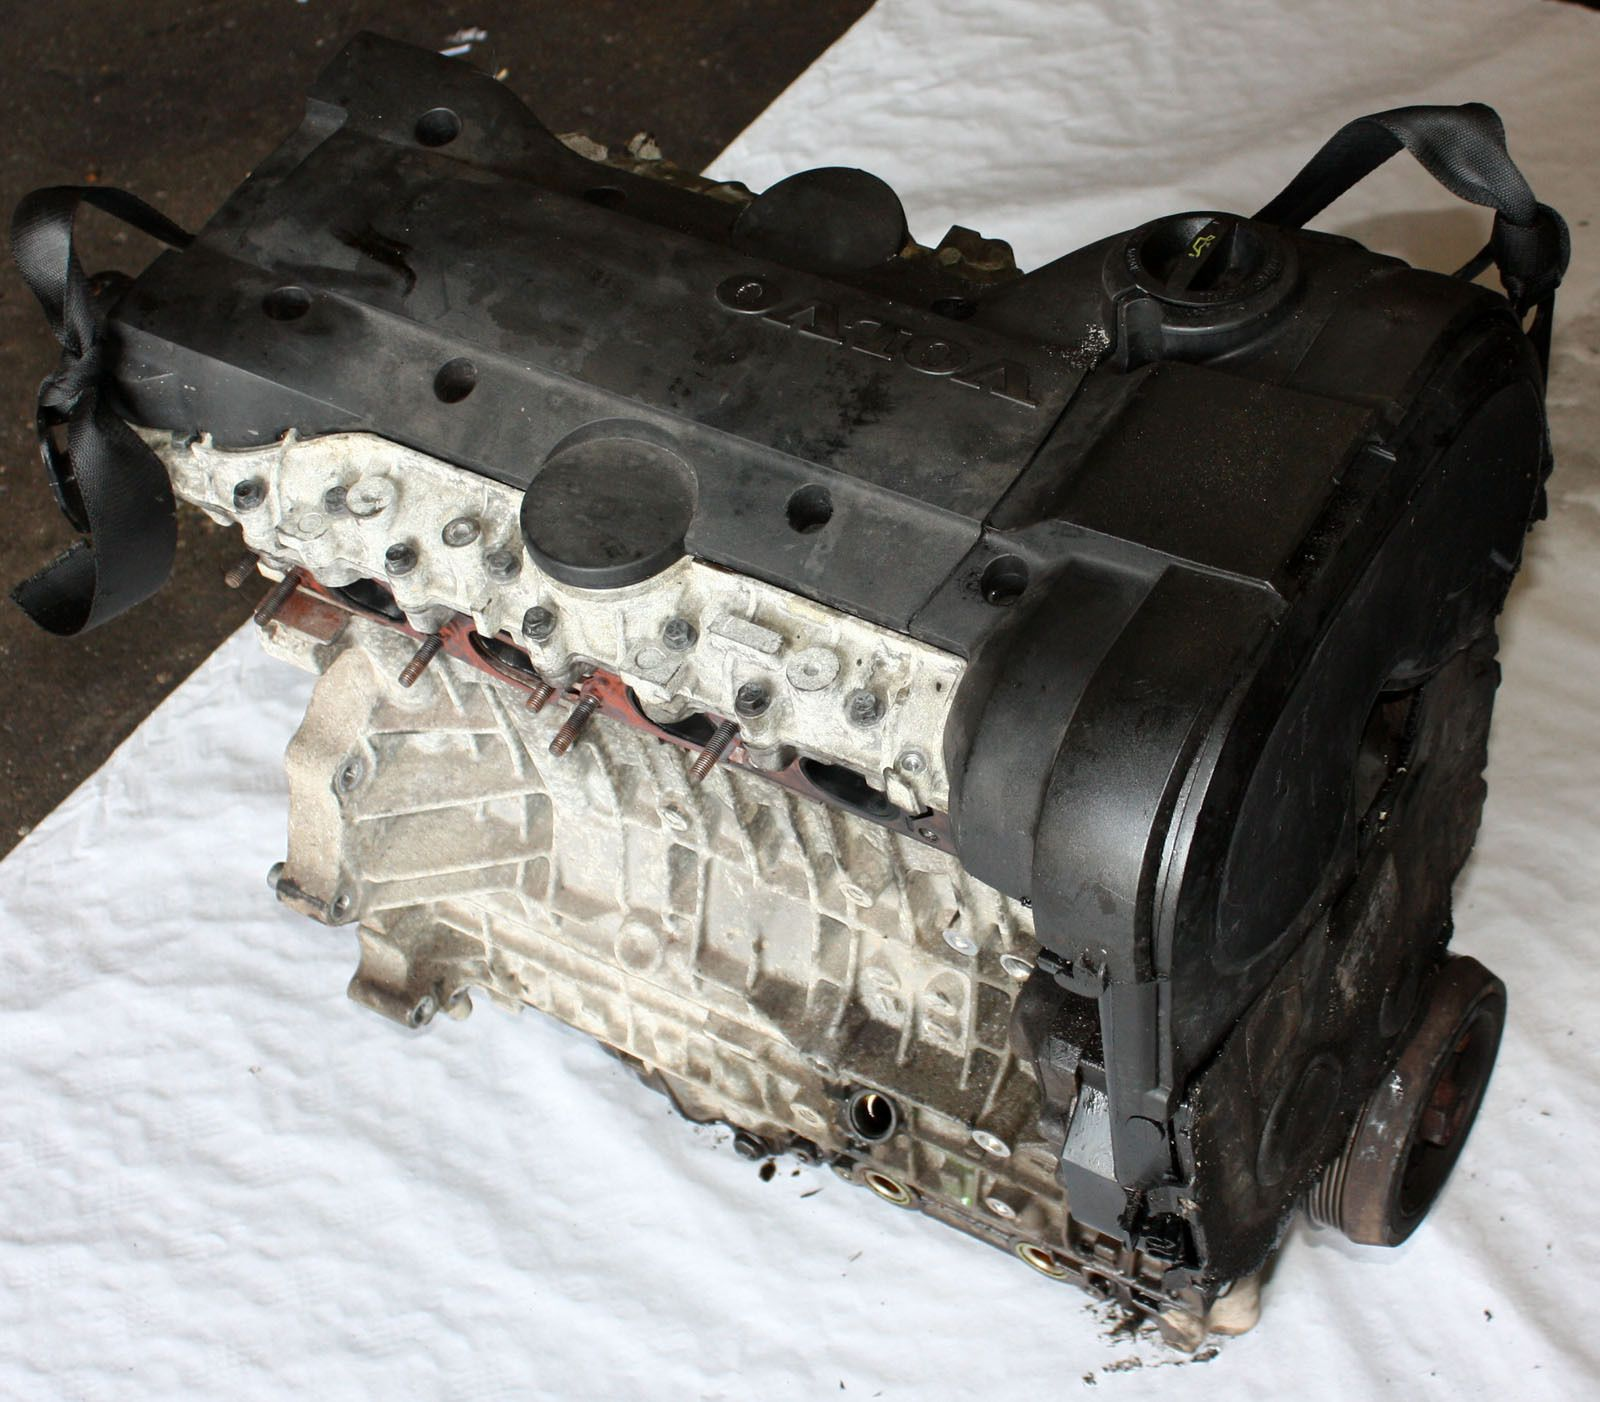 Volvo S40 V50 C30 C70 T5 Se 2 5 Turbo Petrol Engine